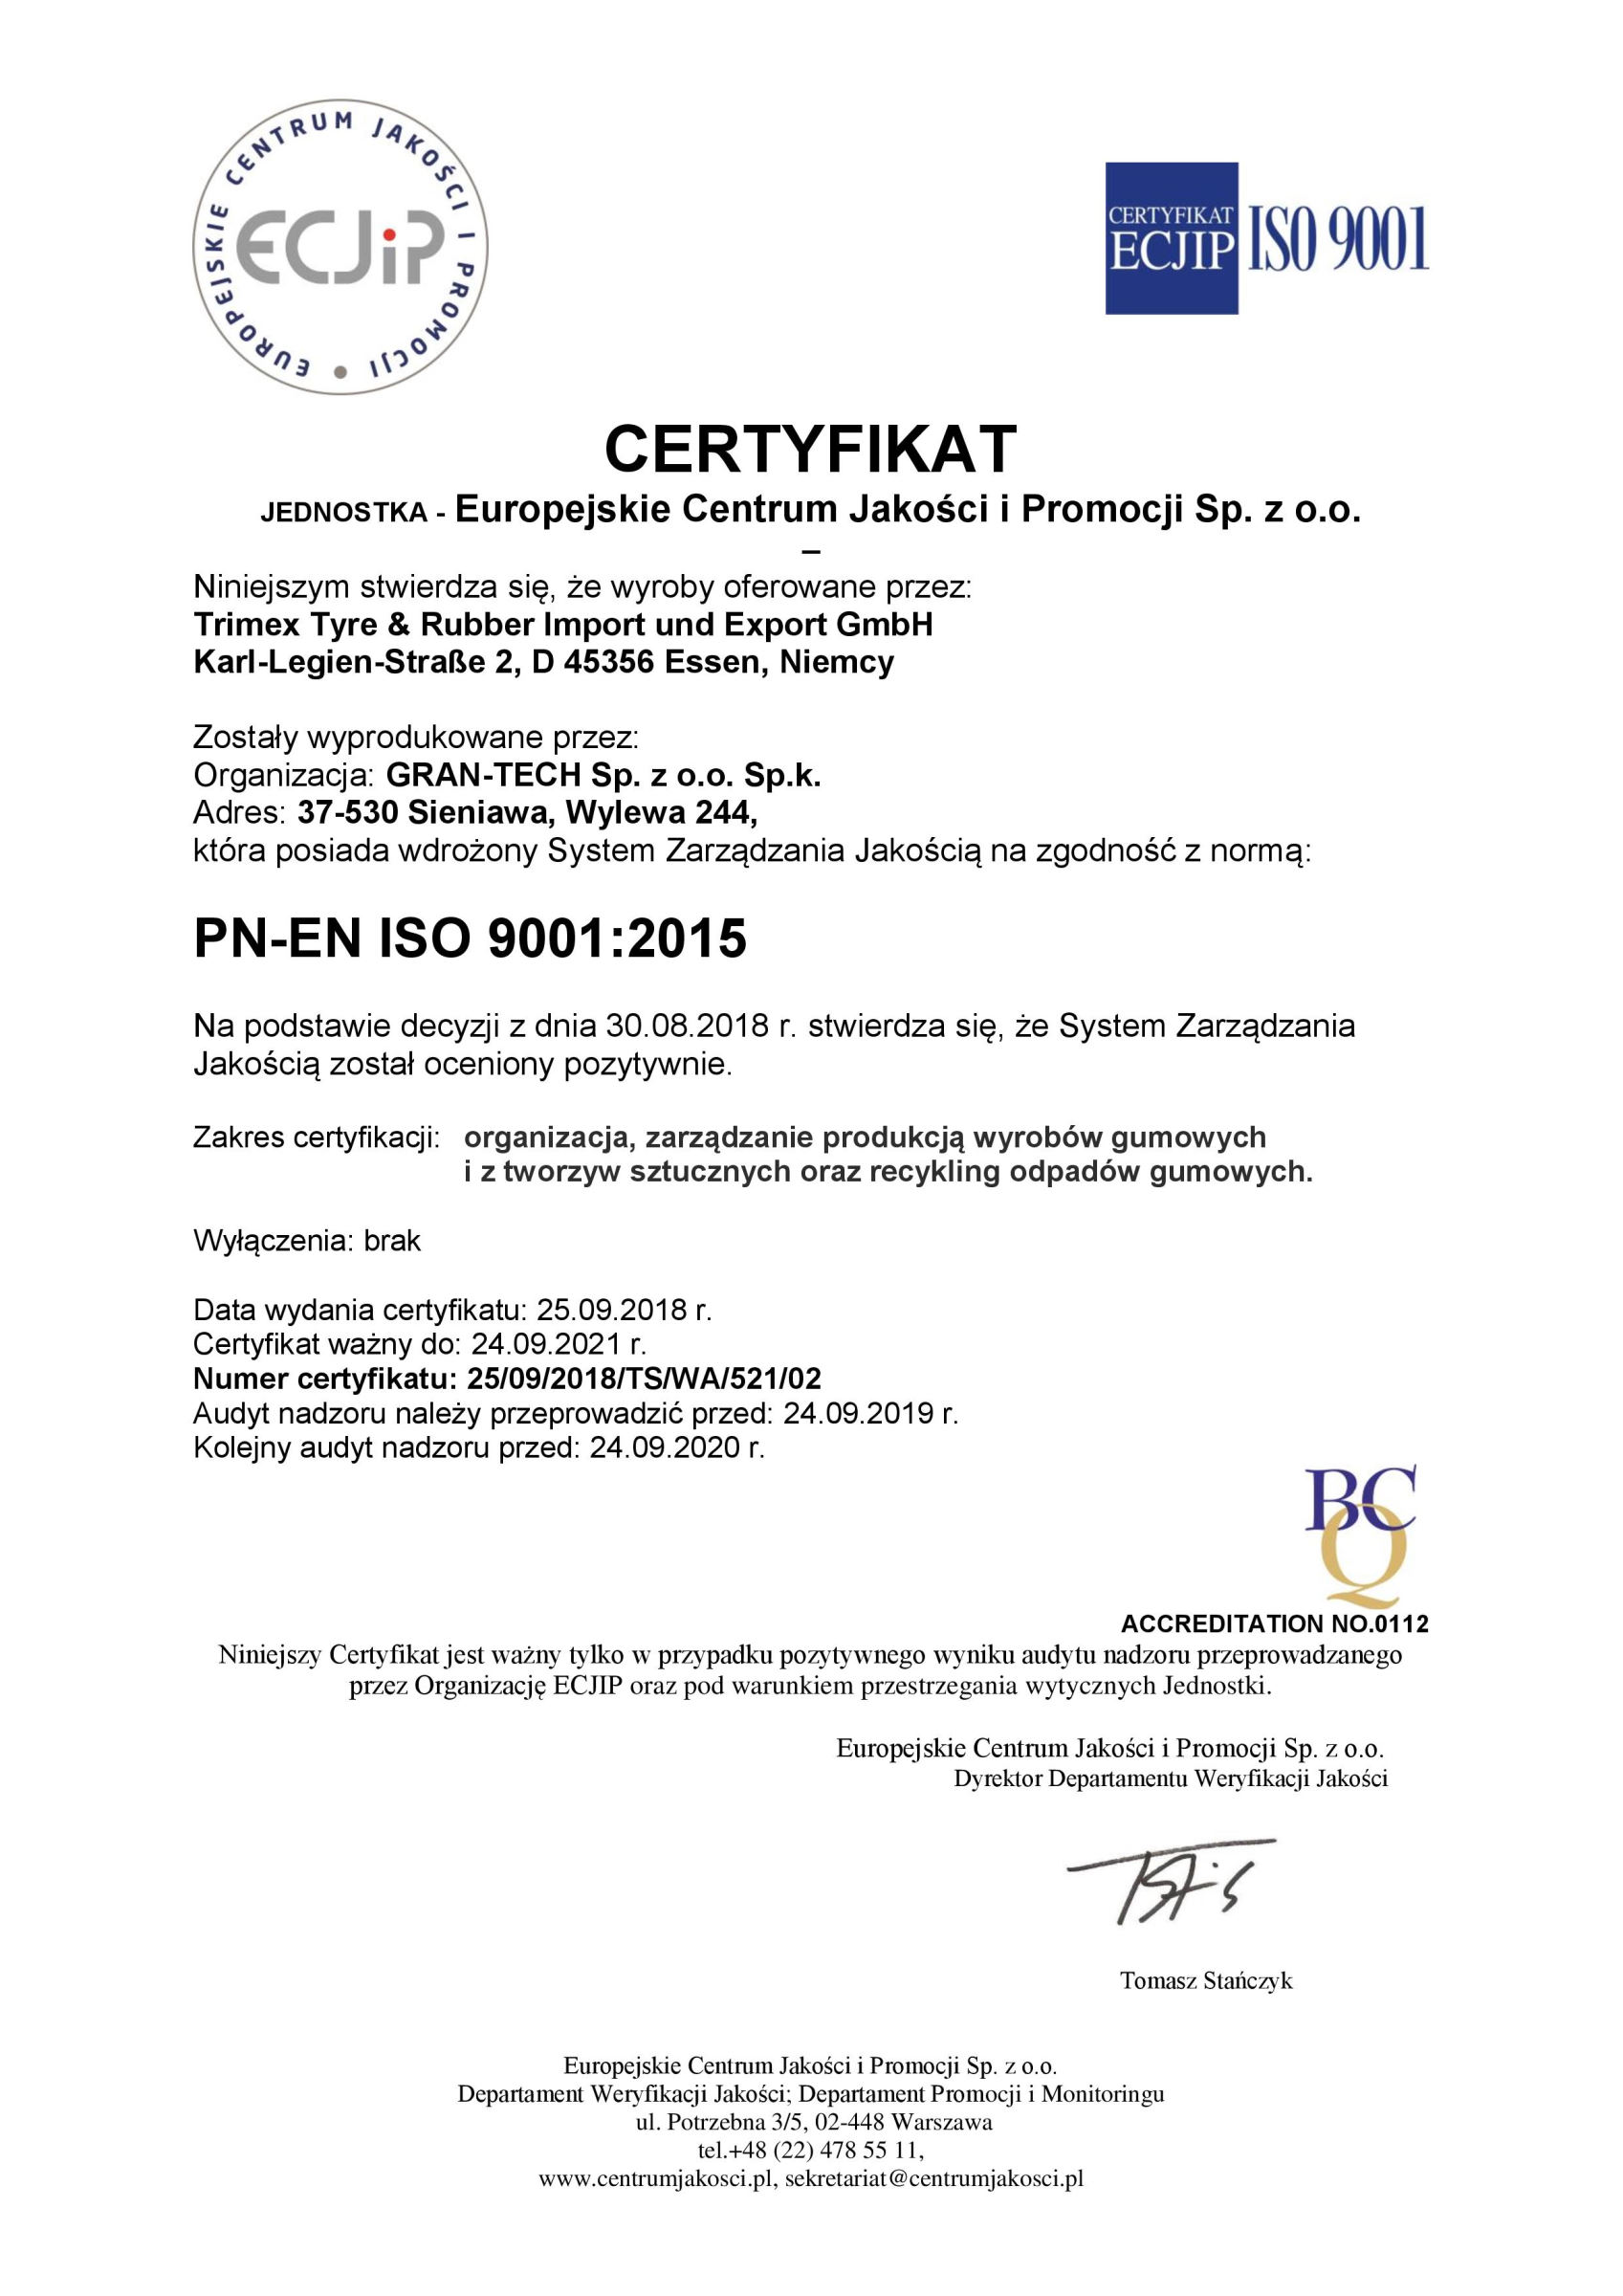 GRAN-TECH - ISO 90012015 2018-page-001